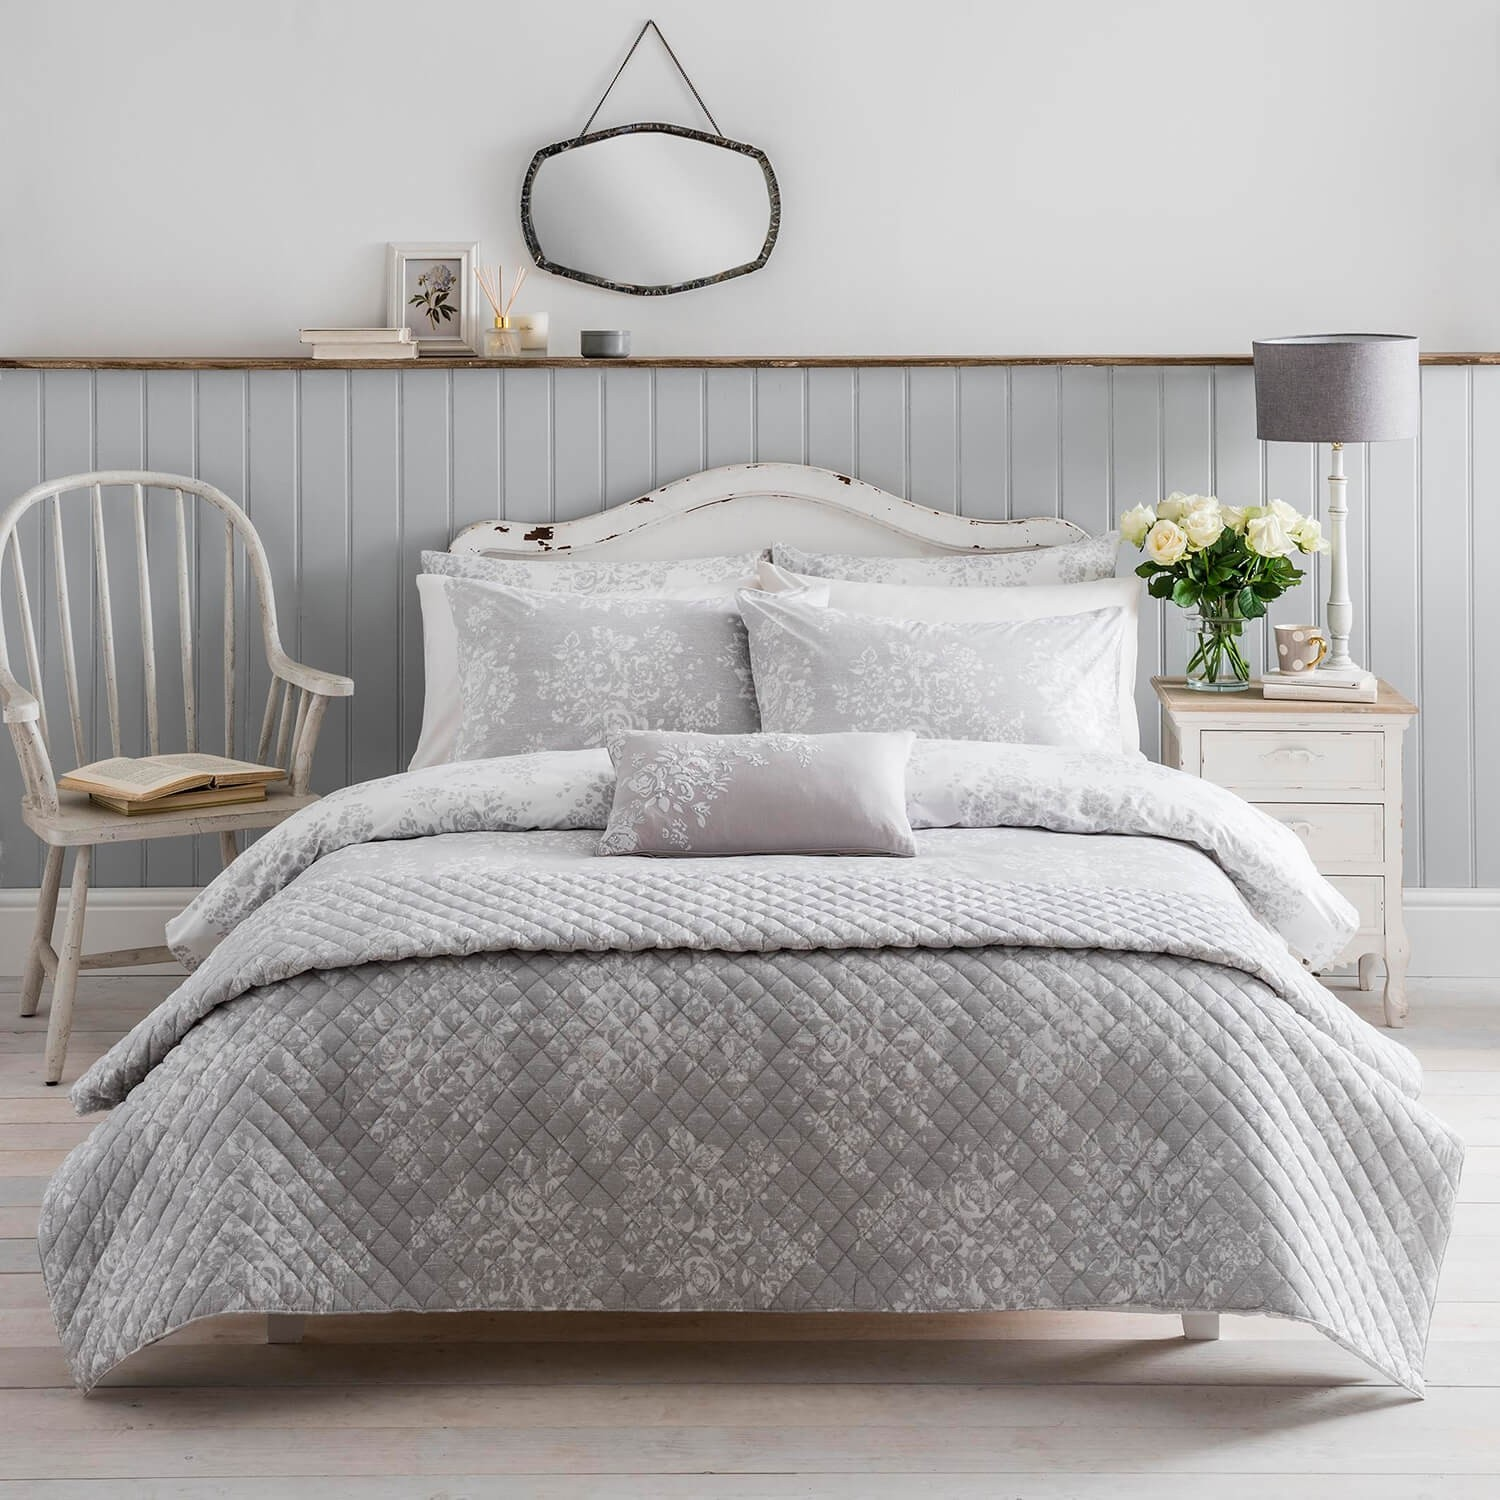 Cath Kidston Washed Rose Bedding